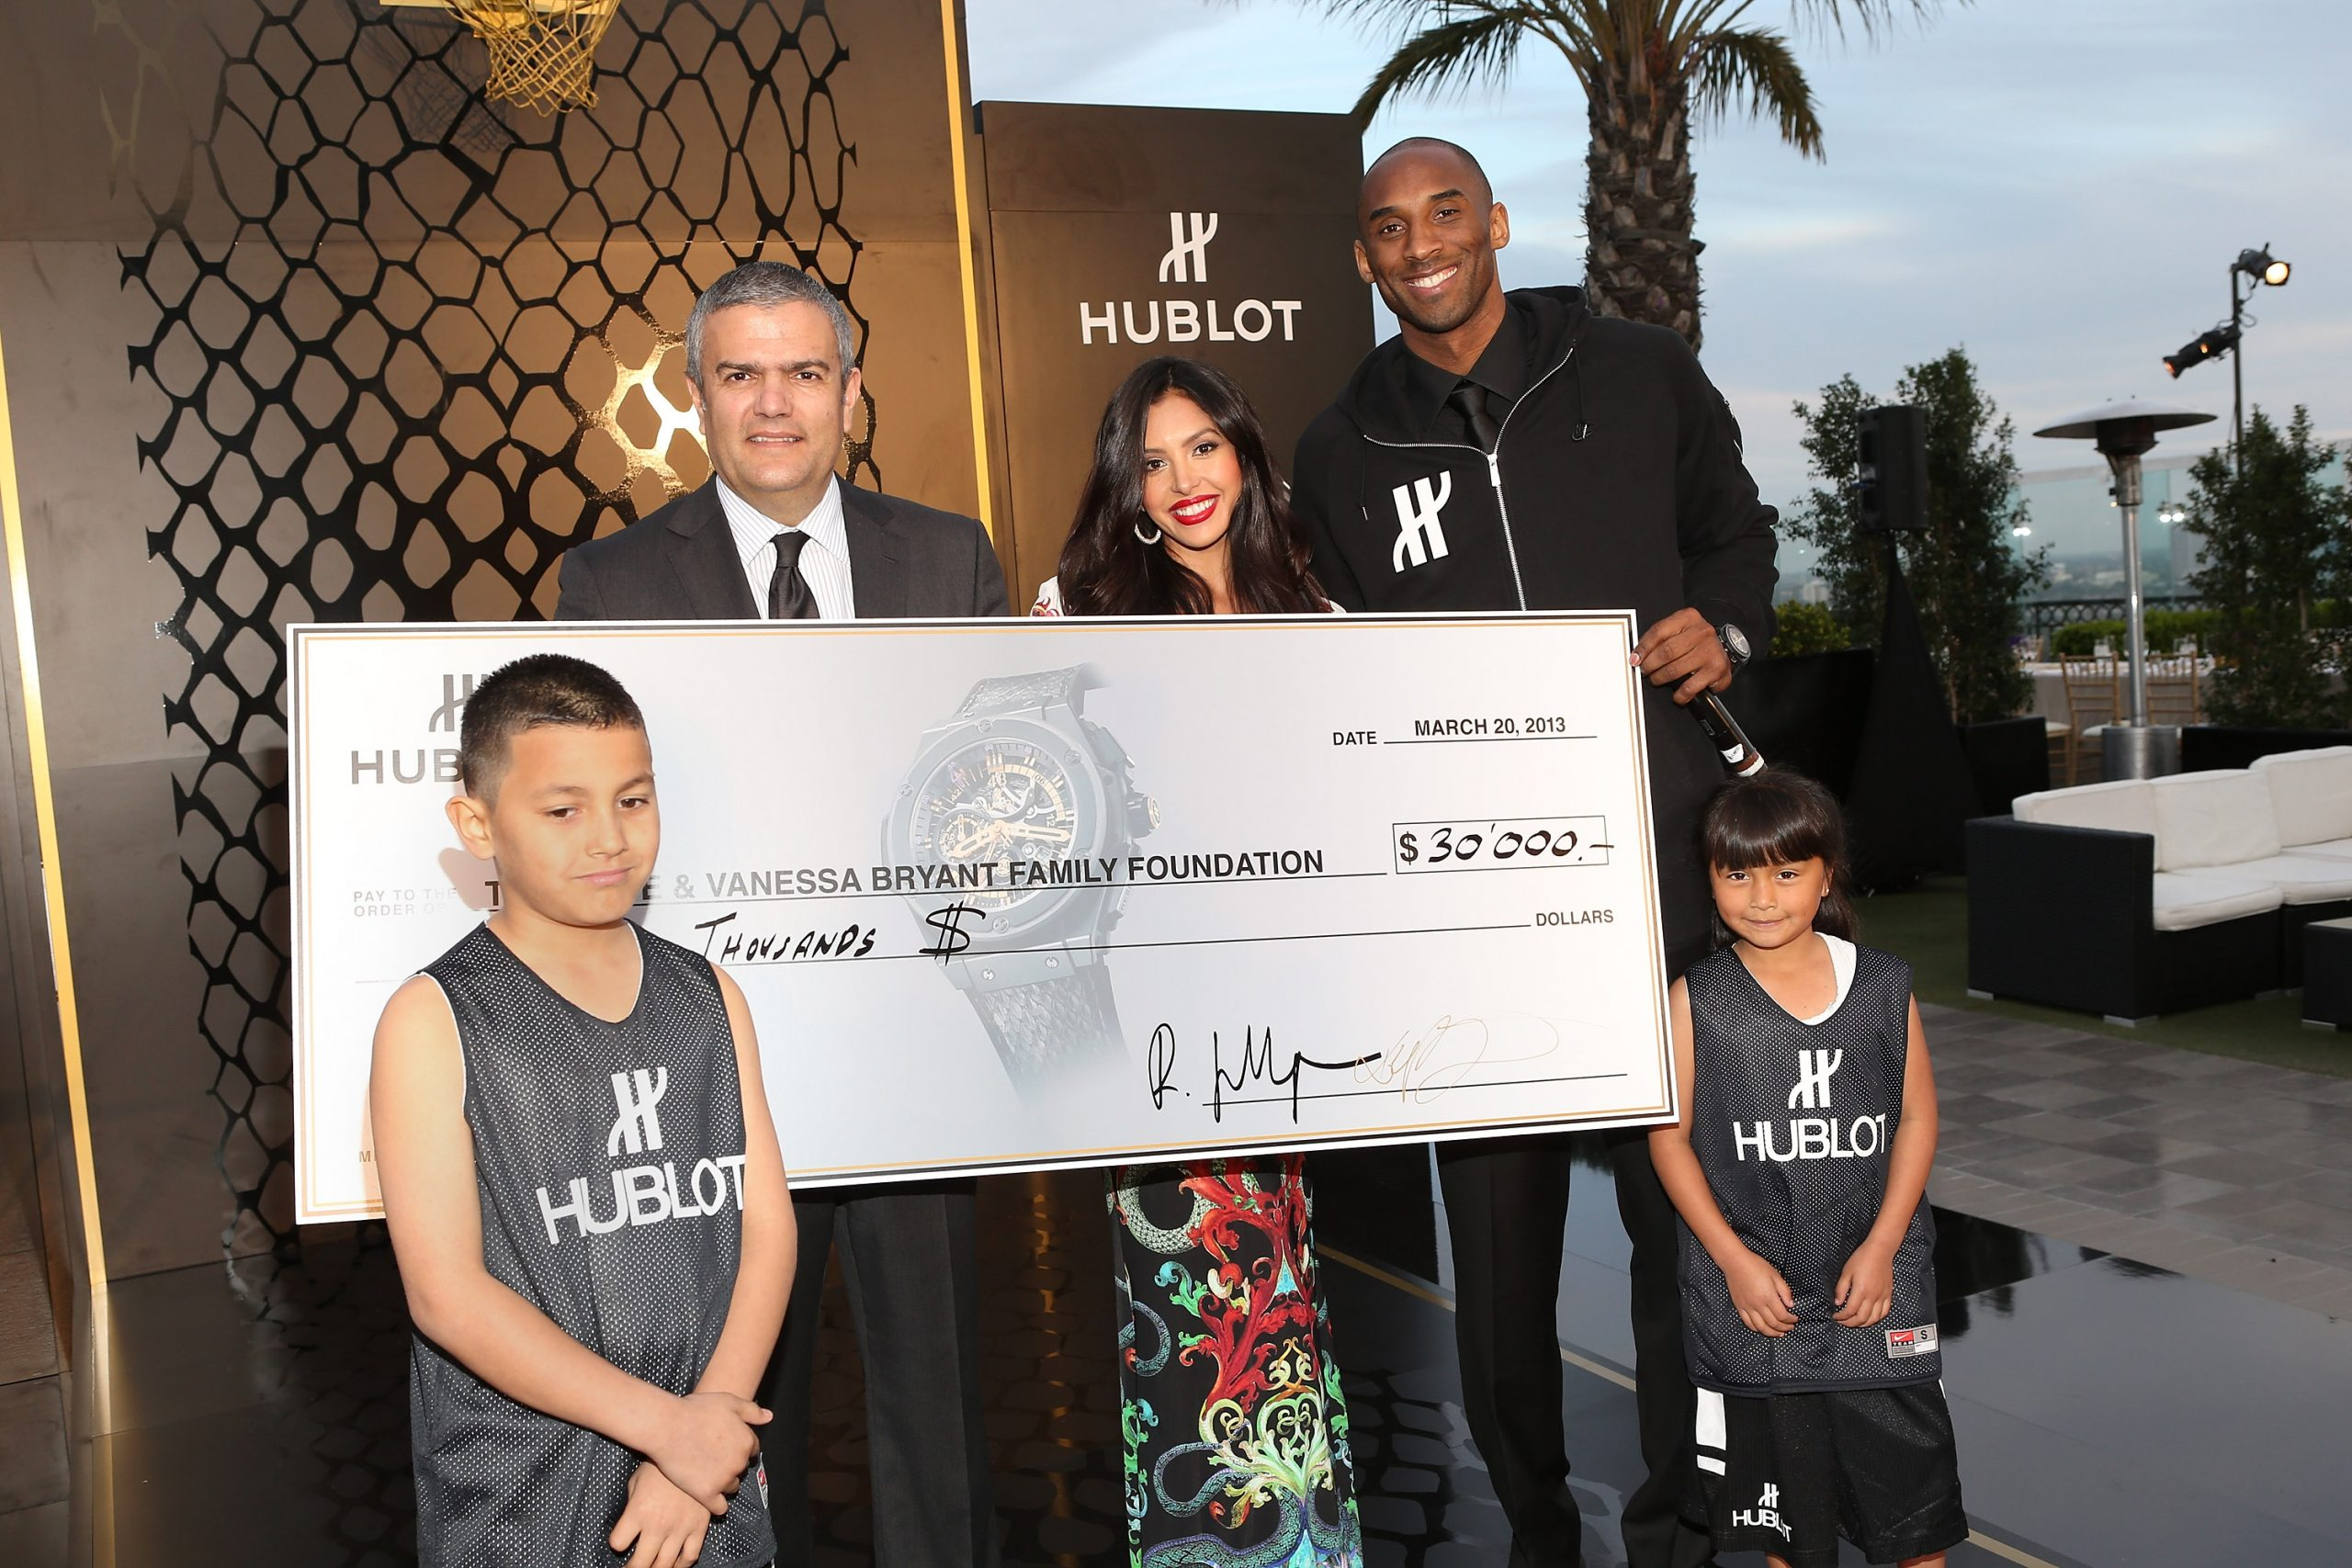 LOS ANGELES, CA - MARCH 20:  (L-R) Juan Valencia, CEO of Hublot, Ricardo Guadalupe, Vanessa Bryant, Los Angeles Laker Kobe Bryant and Kimberly Martinez attend the celebration of Hublot's new brand ambassador Kobe Bryant on March 20, 2013 in Los Angeles, California.  (Photo by Jesse Grant/Getty Images for Hublot)